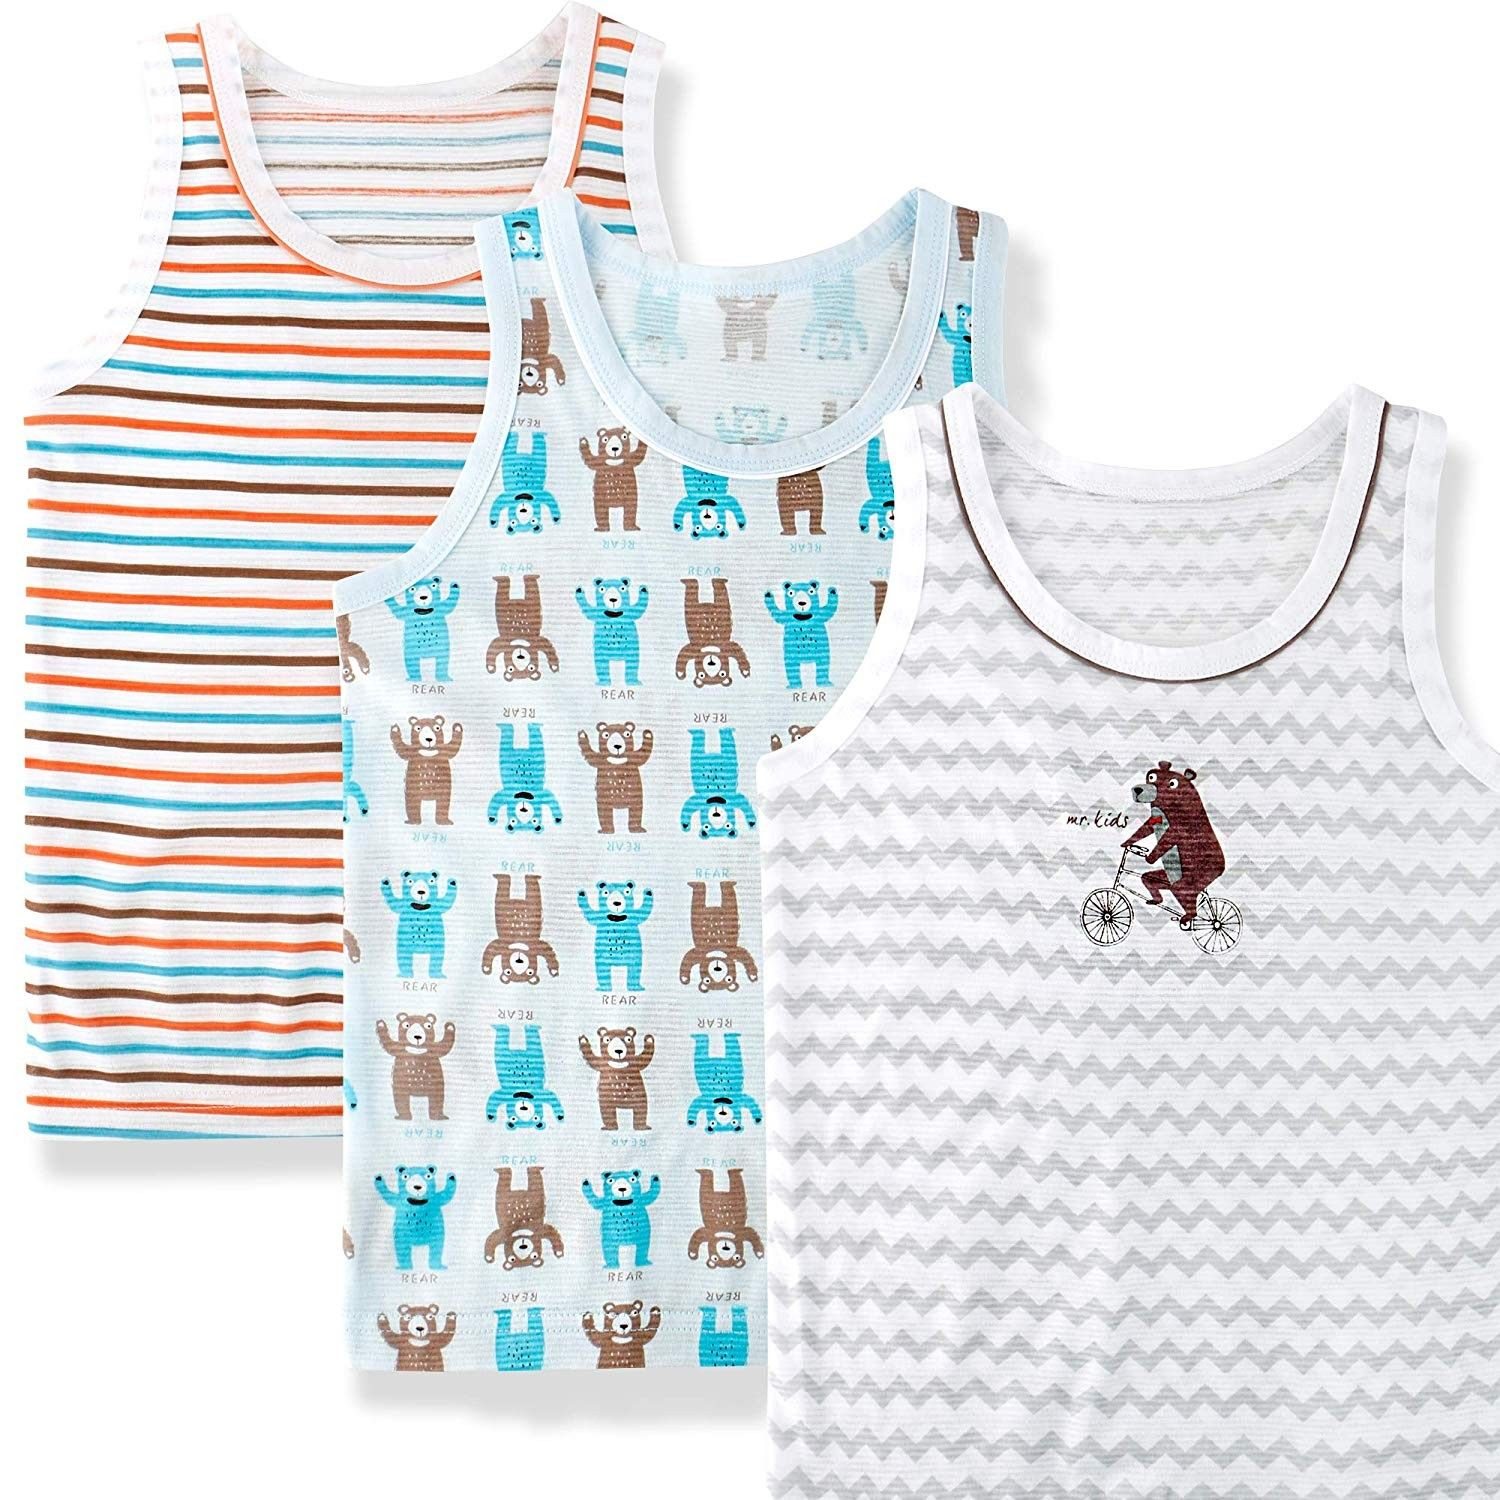 Pin on Kids' Clothing for Boy